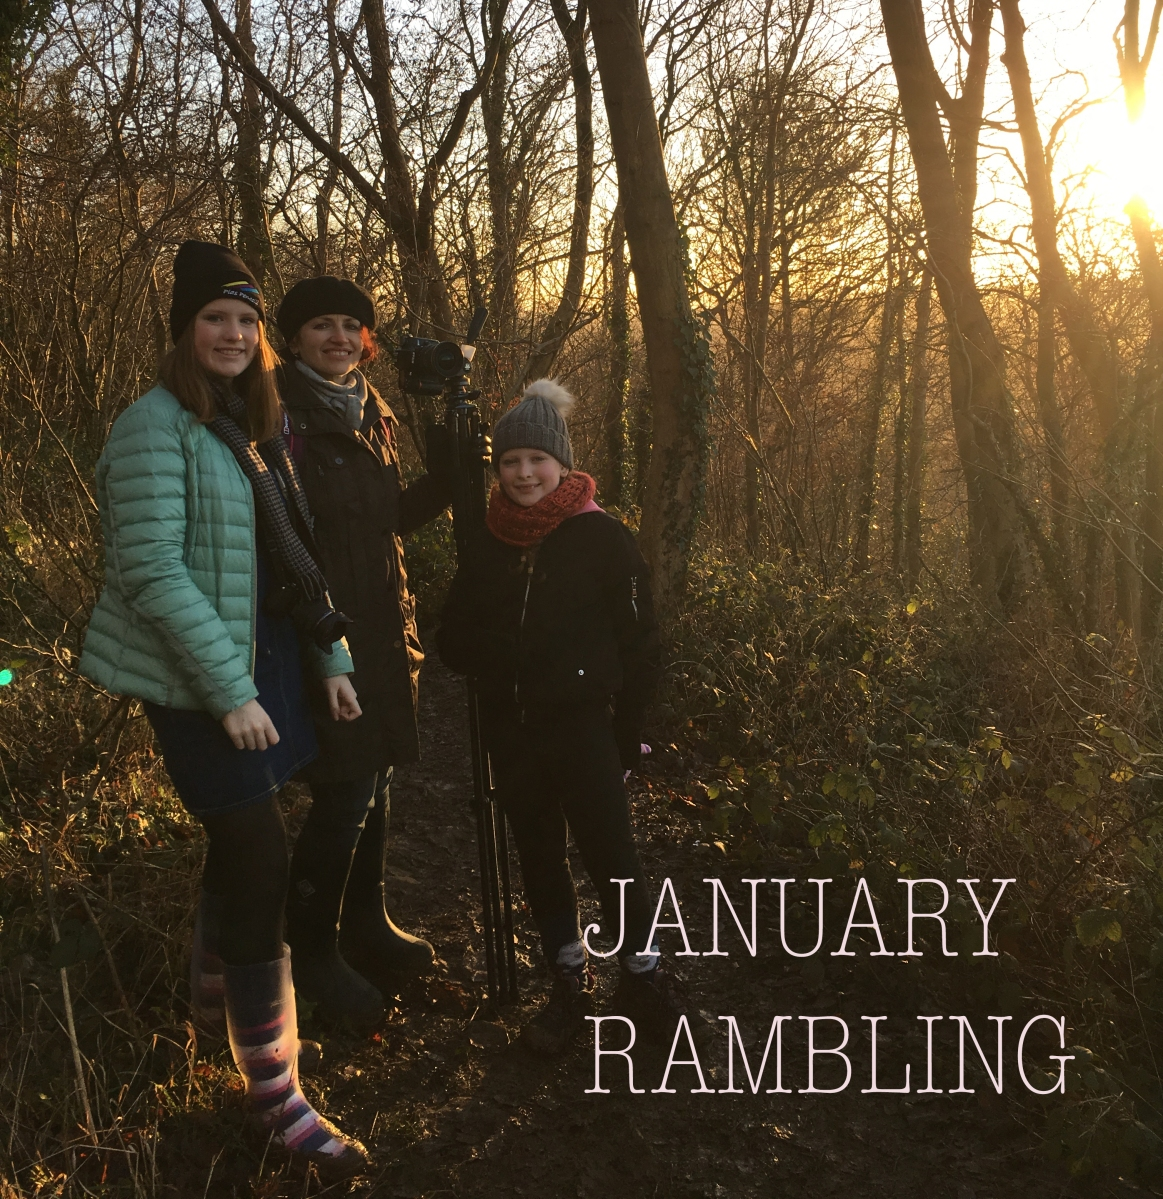 January Rambling